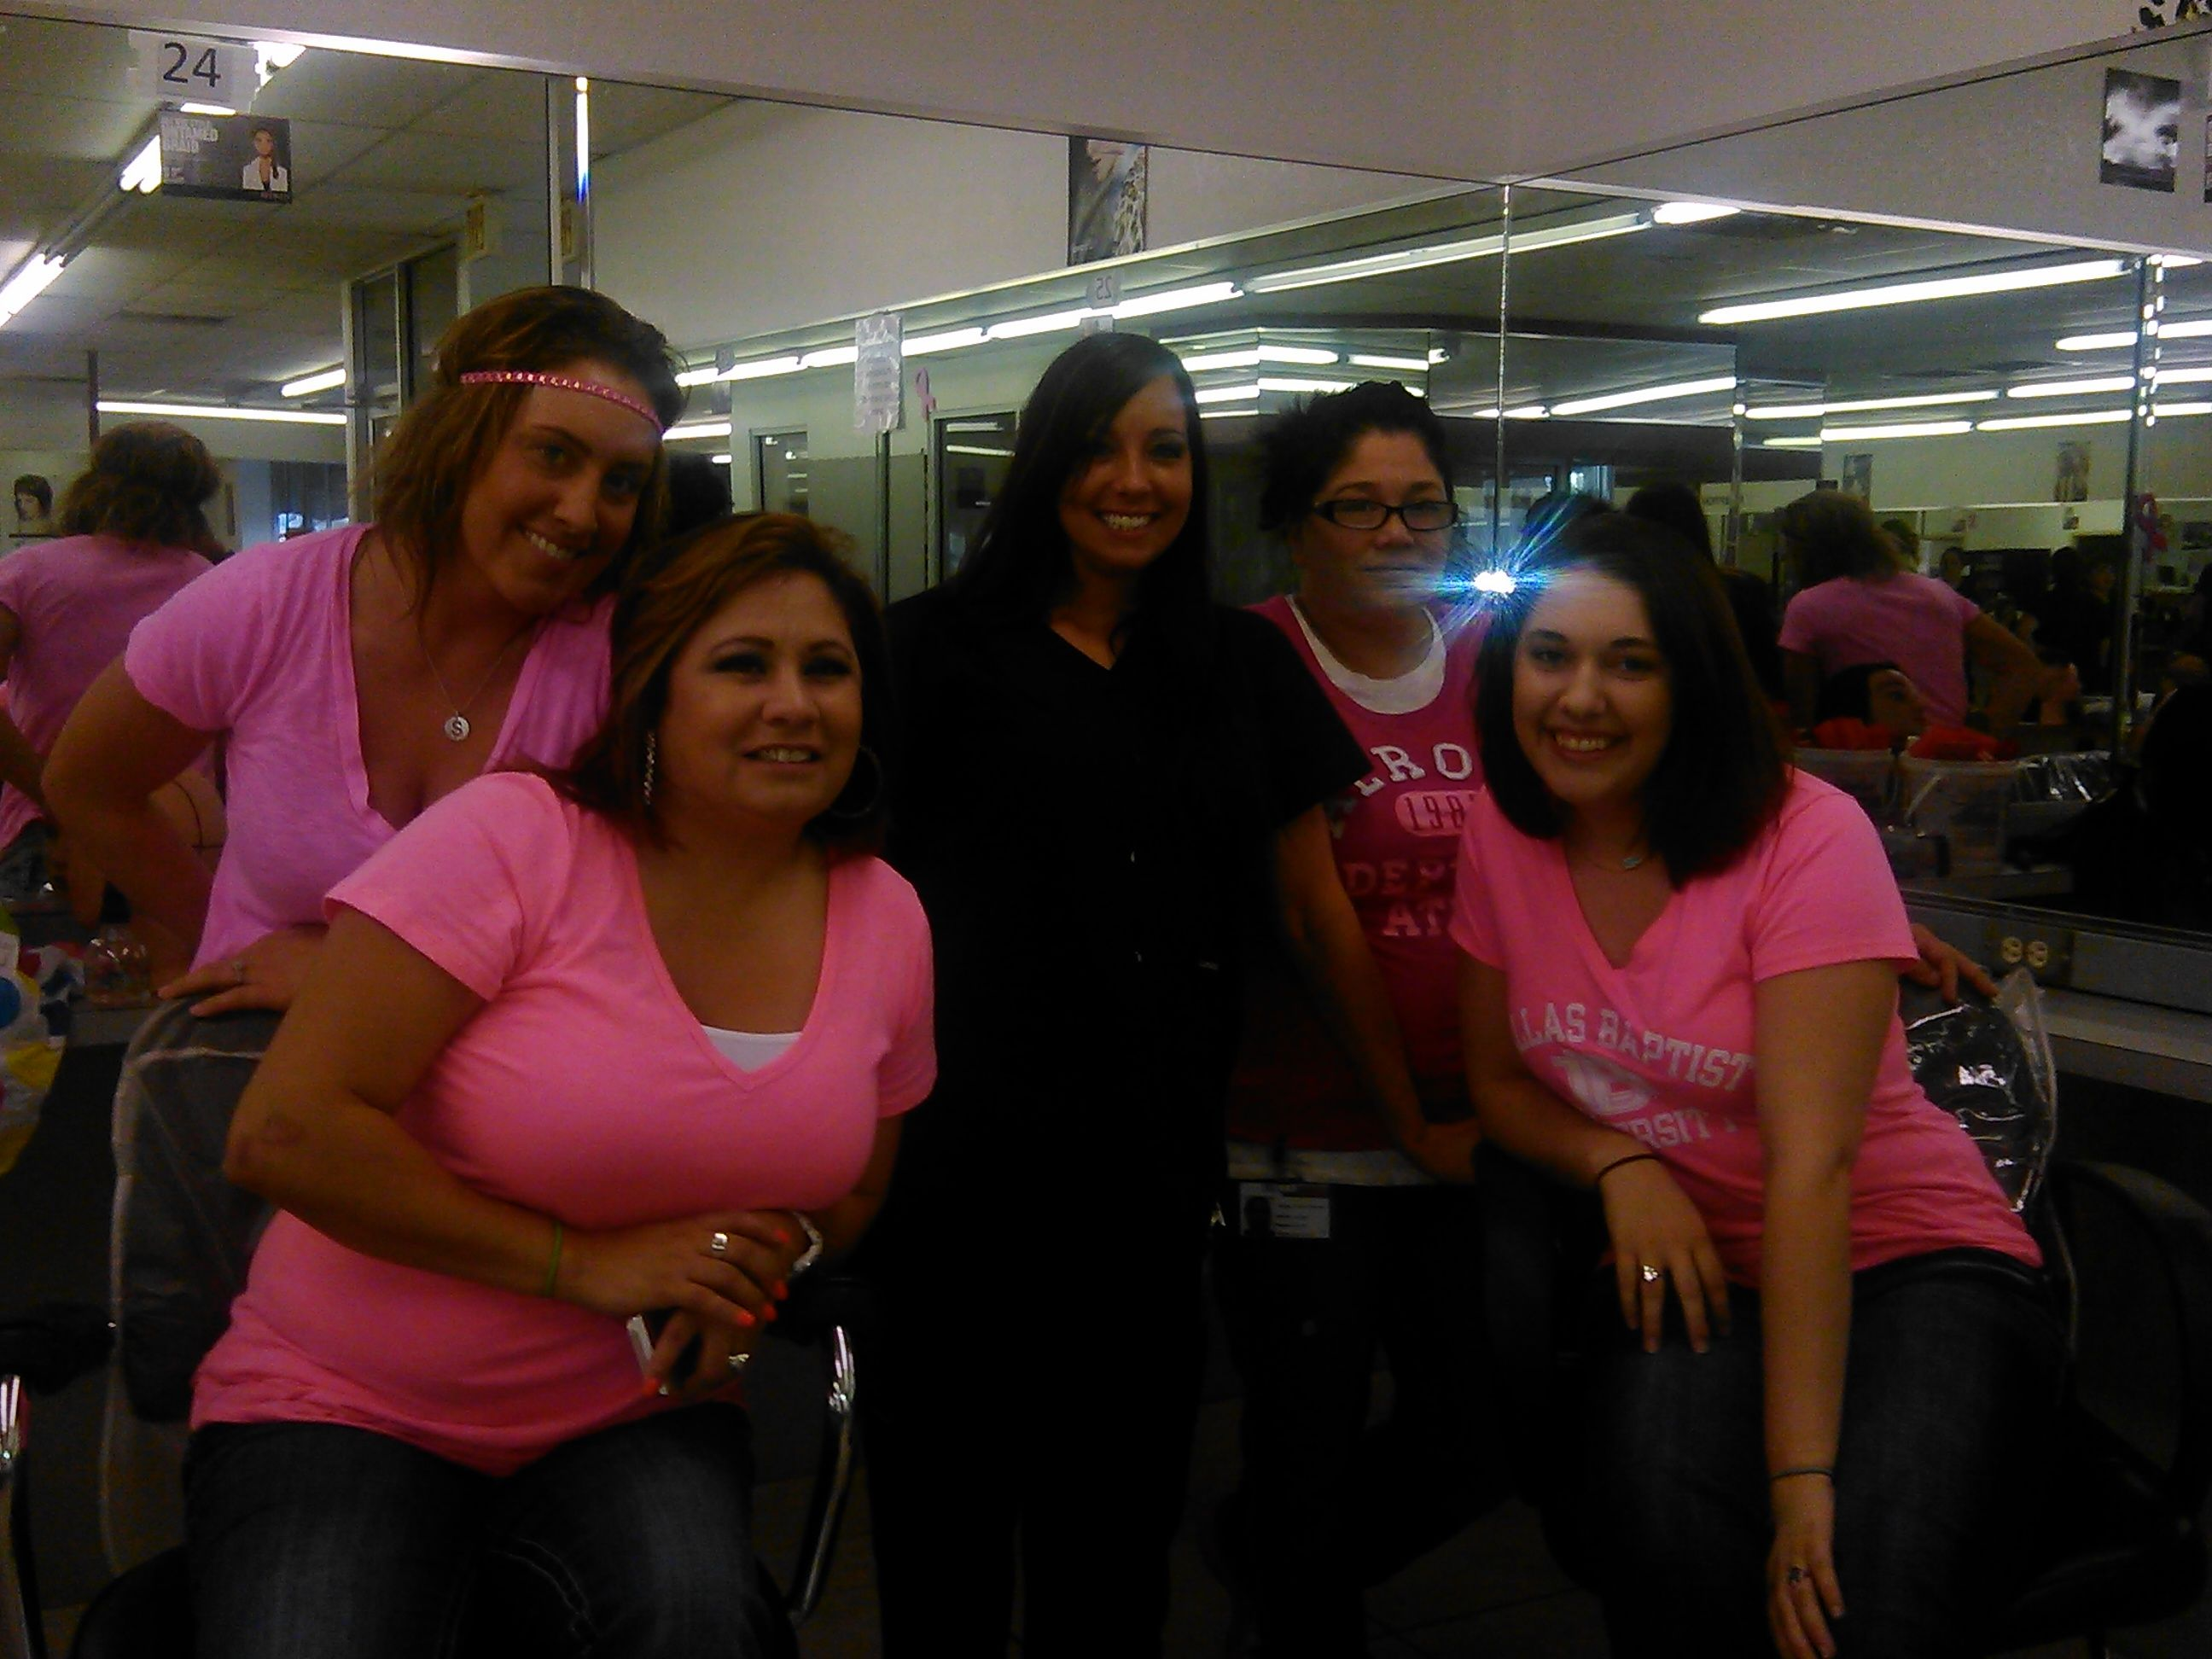 Pink Out Waco Beauty School Students Dressed All In Pink To Support